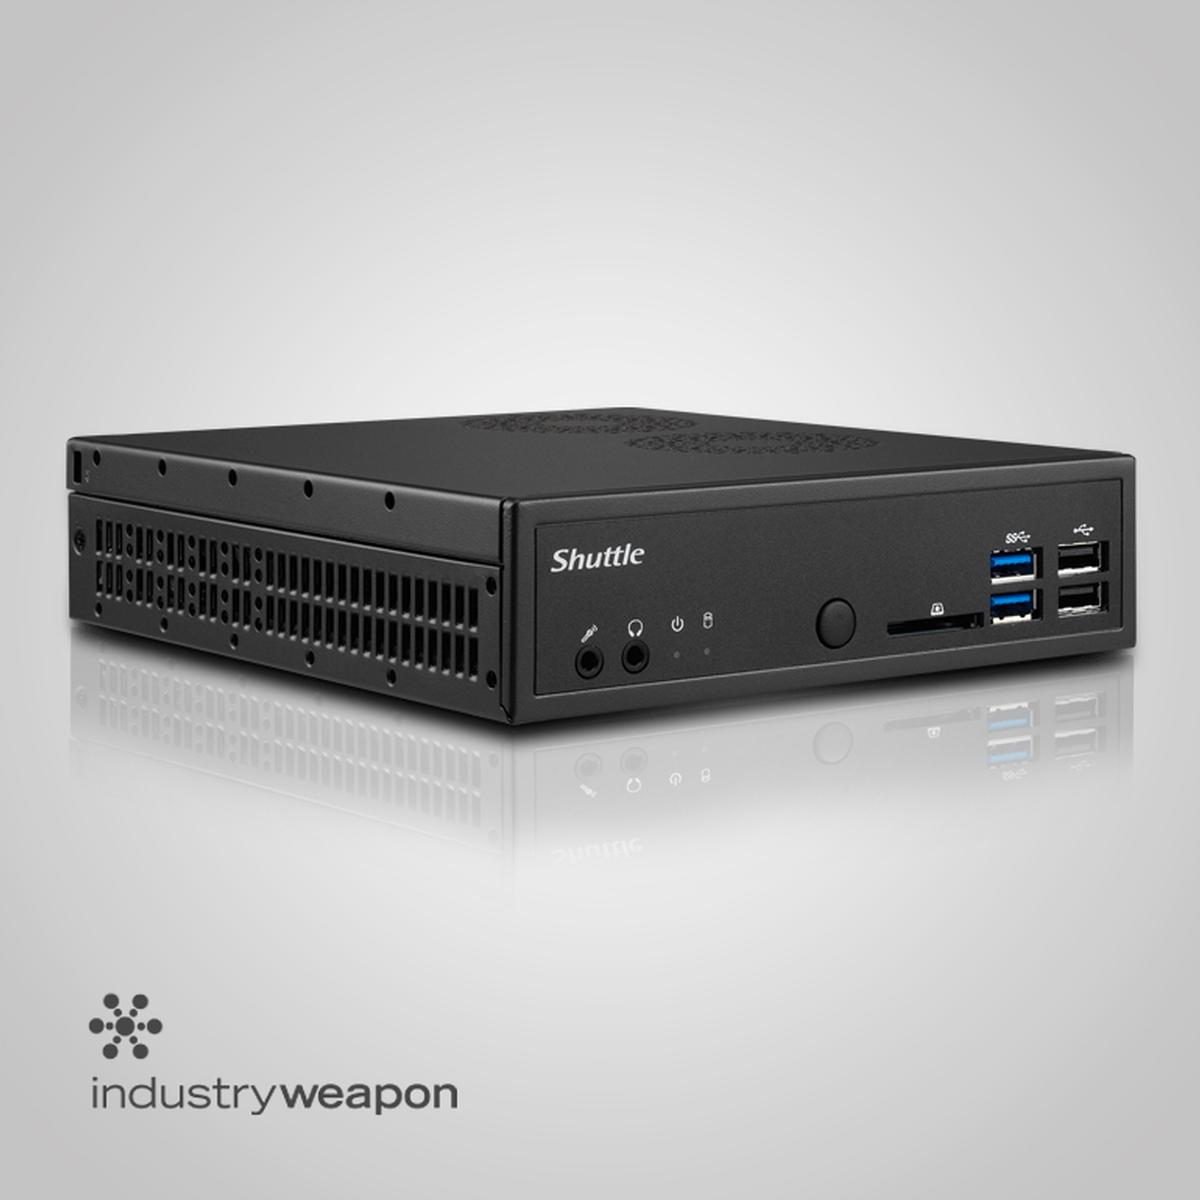 Dh1100 Q24246 Iw I5 Industry Weapon Ds Player Shuttle Computer Hubbell Wiring Devices Philippines